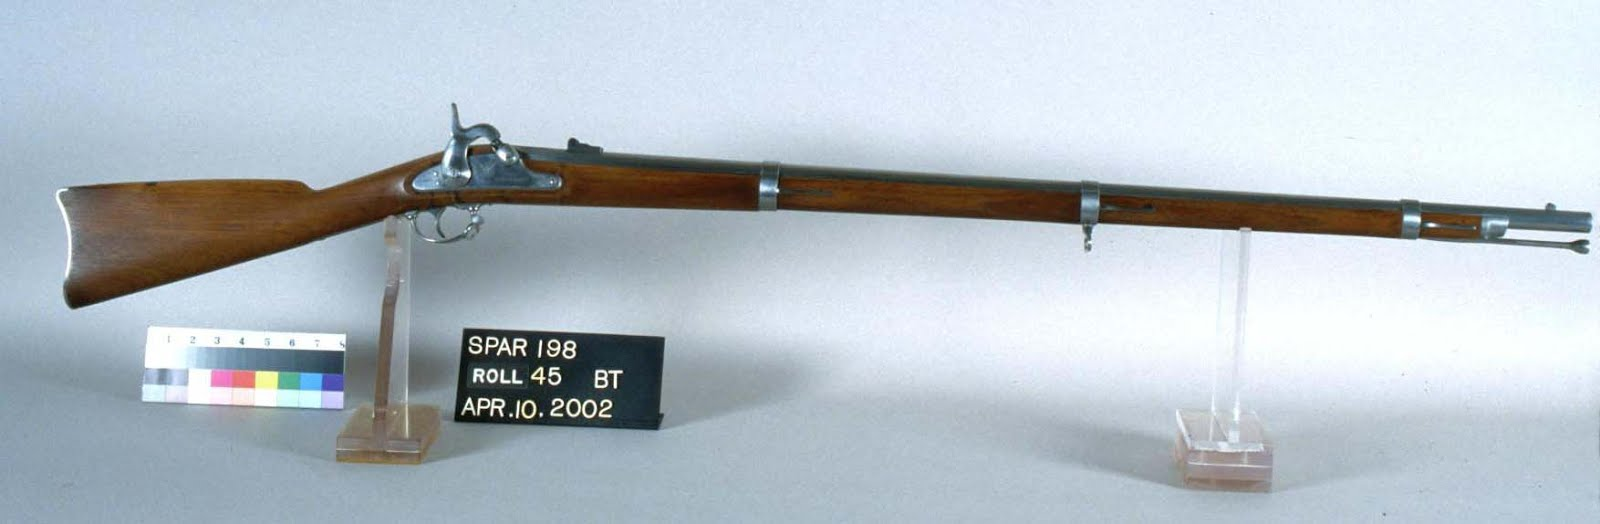 1853 Enfield Wooden Musket for manual of Arms Training